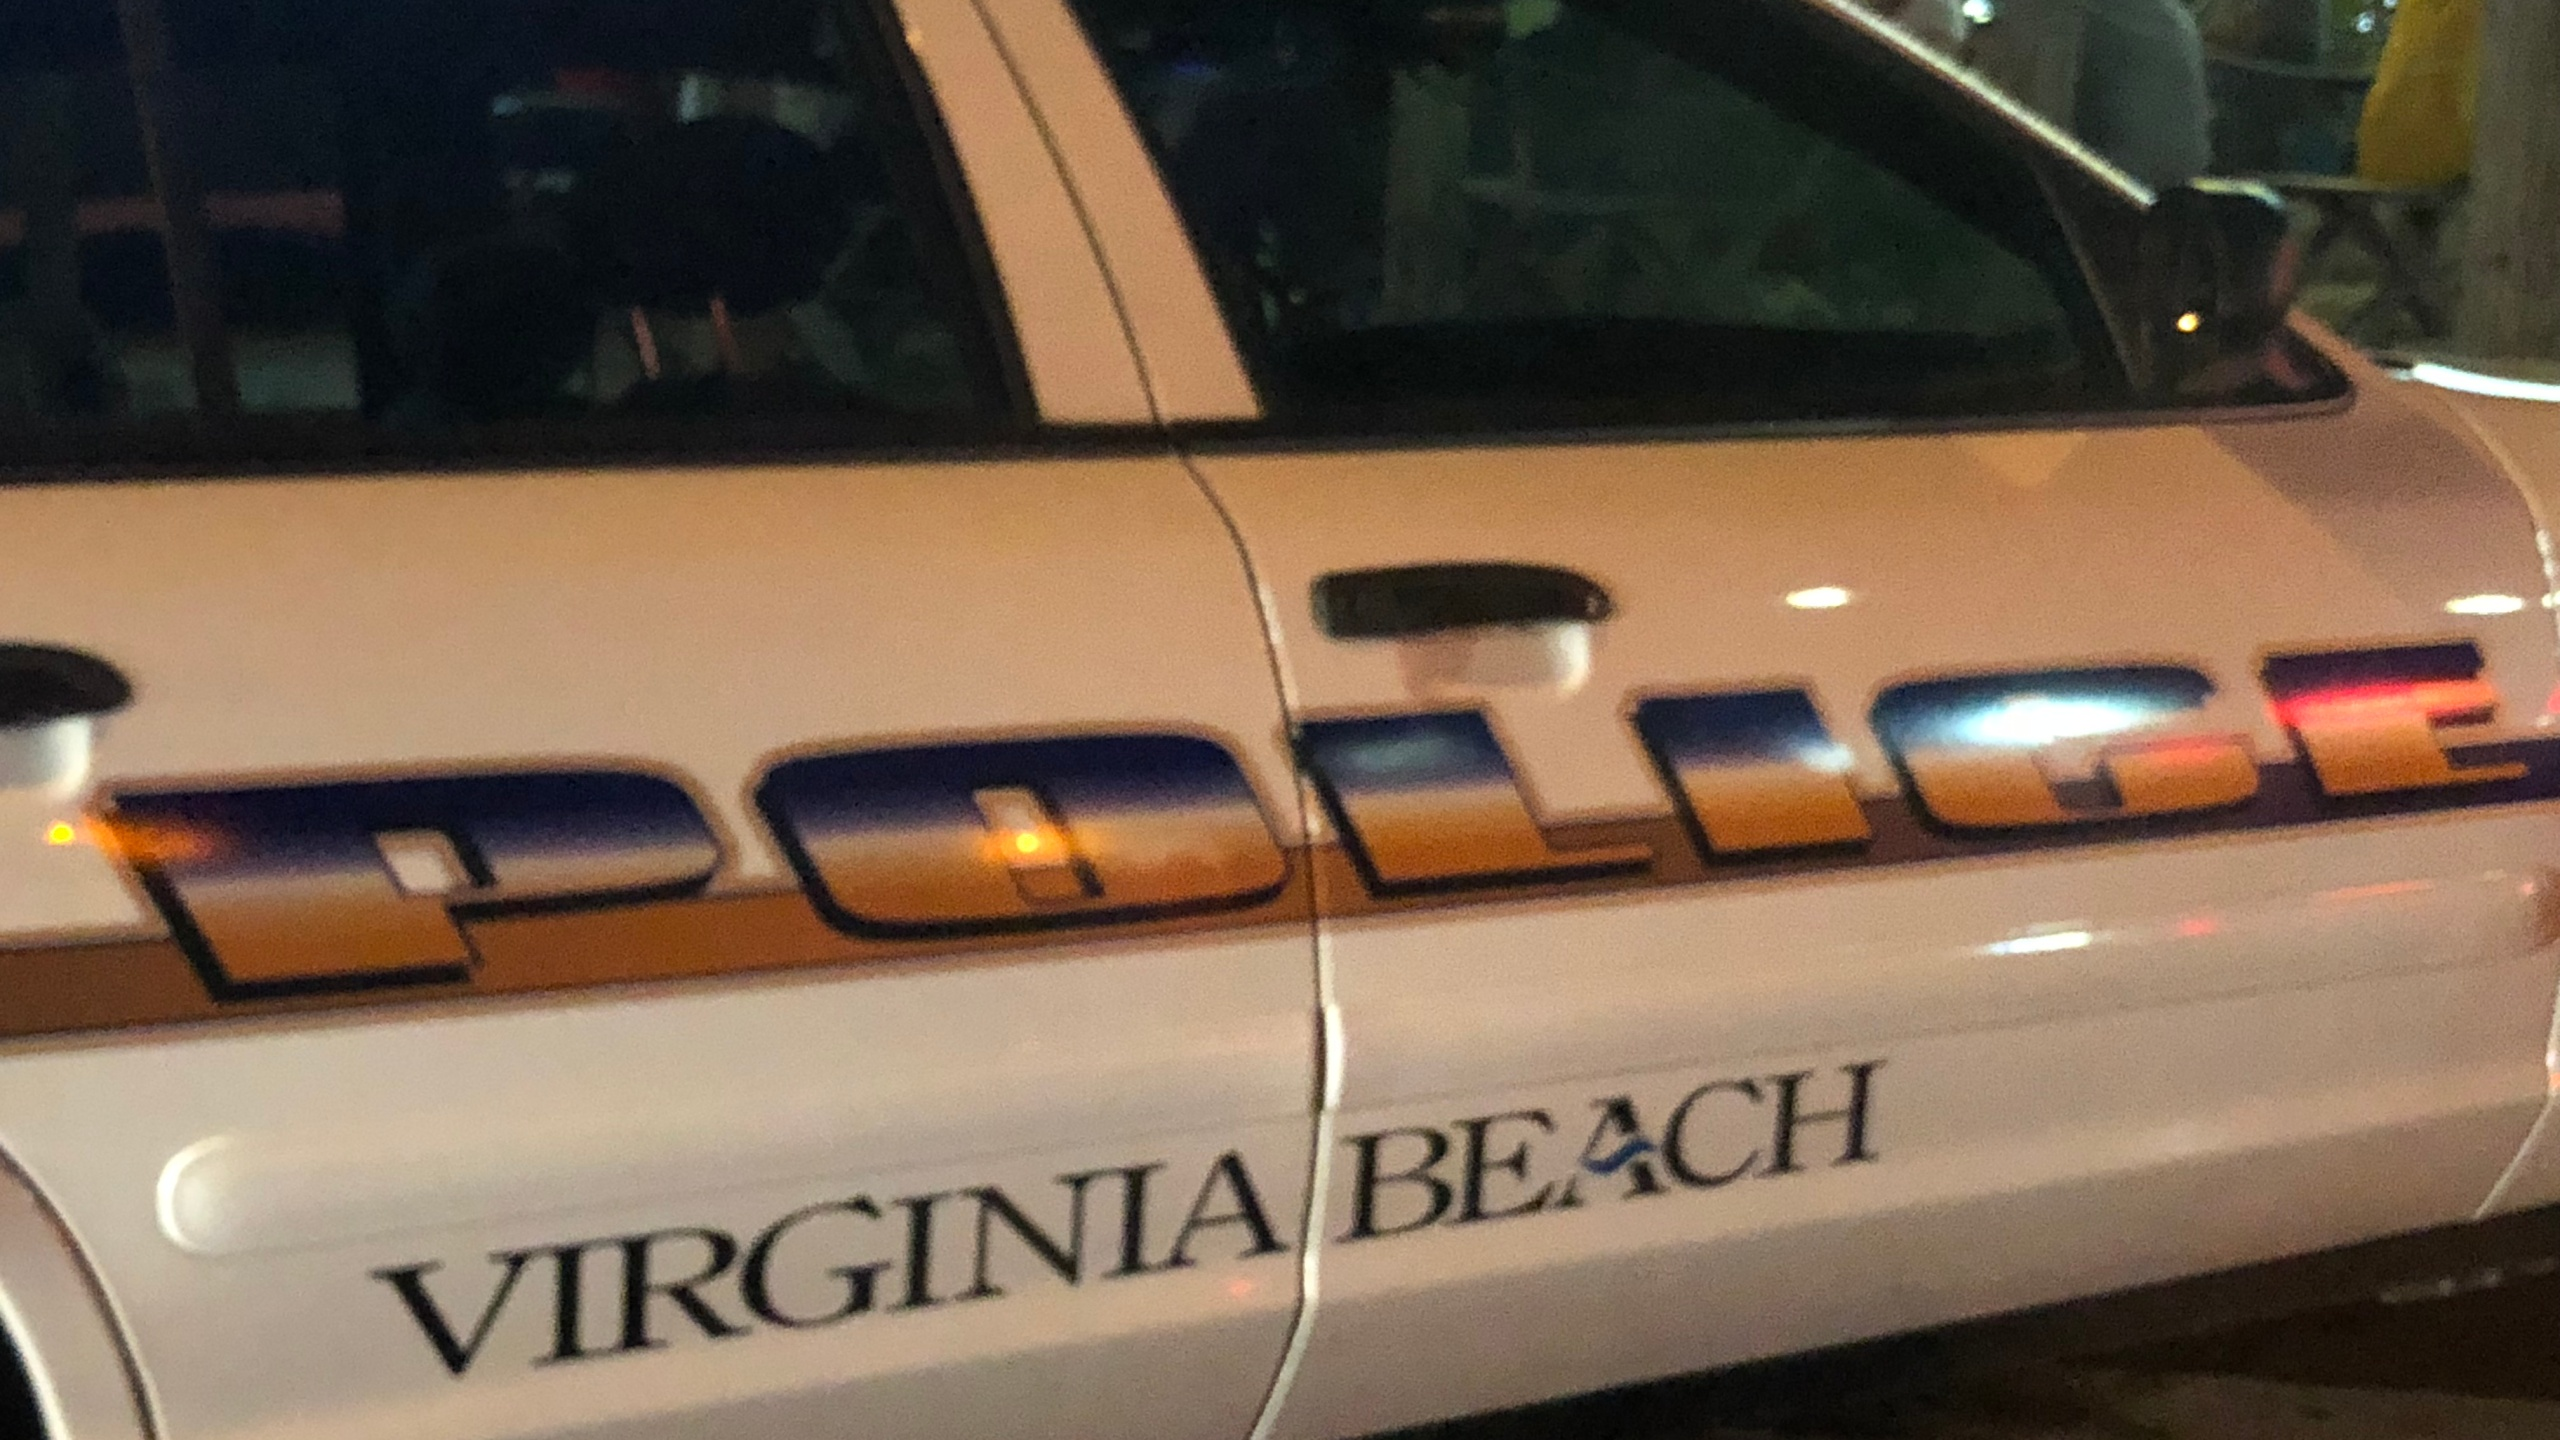 Virginia Beach Police Generic